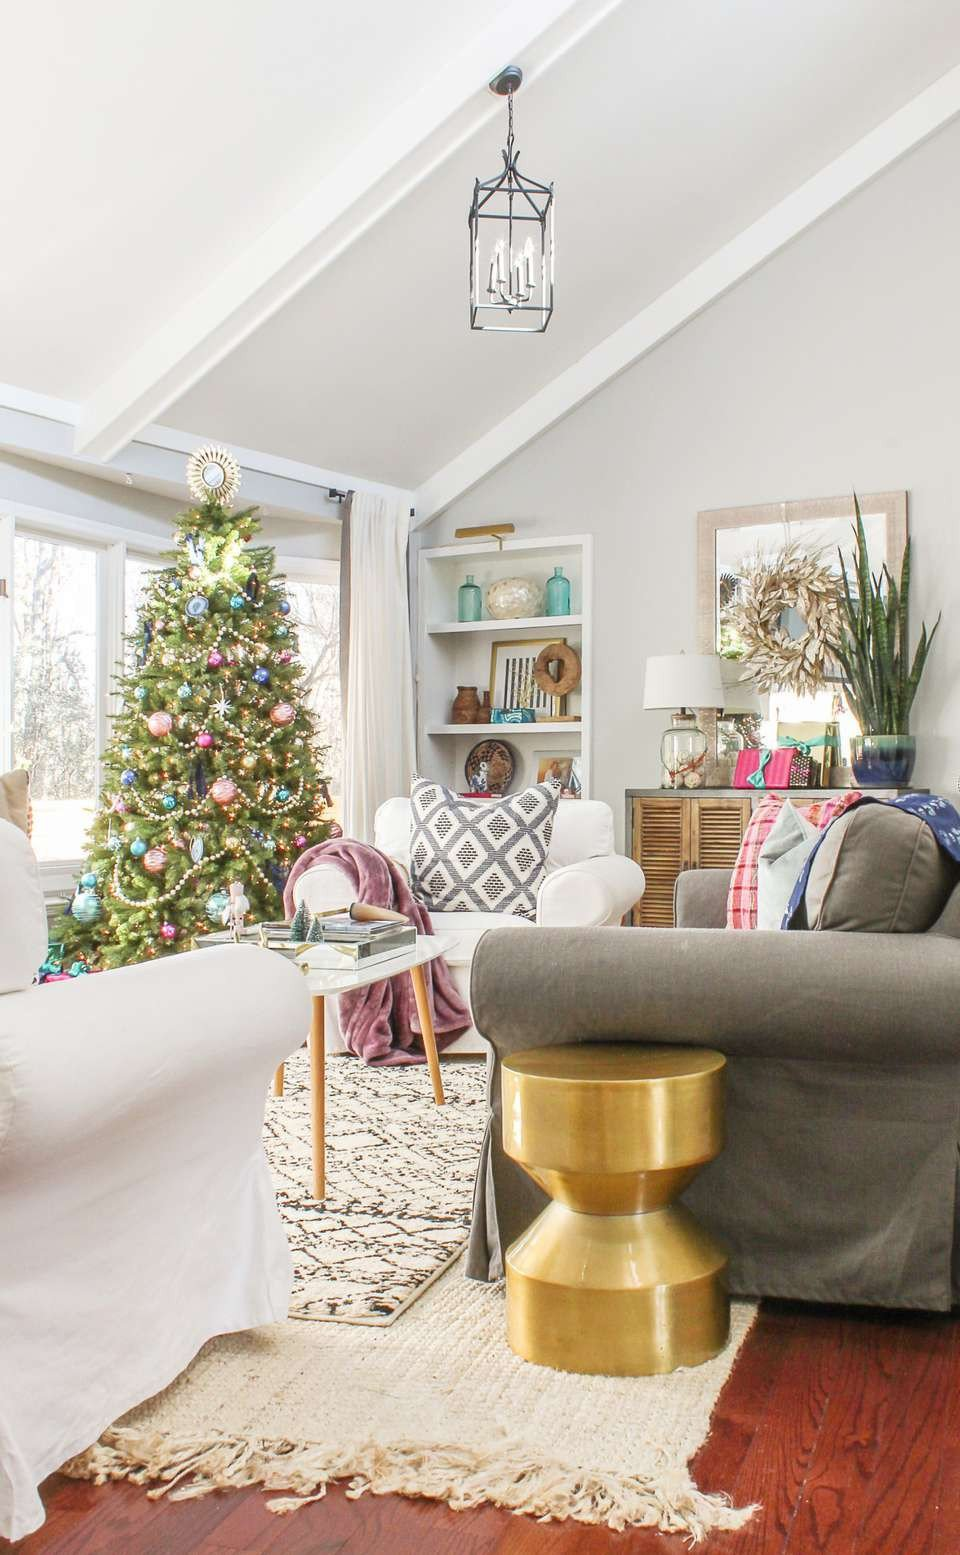 Modern Living Room Decorating Ideas Christmas 21 Beautiful Ways to Decorate the Living Room for Christmas